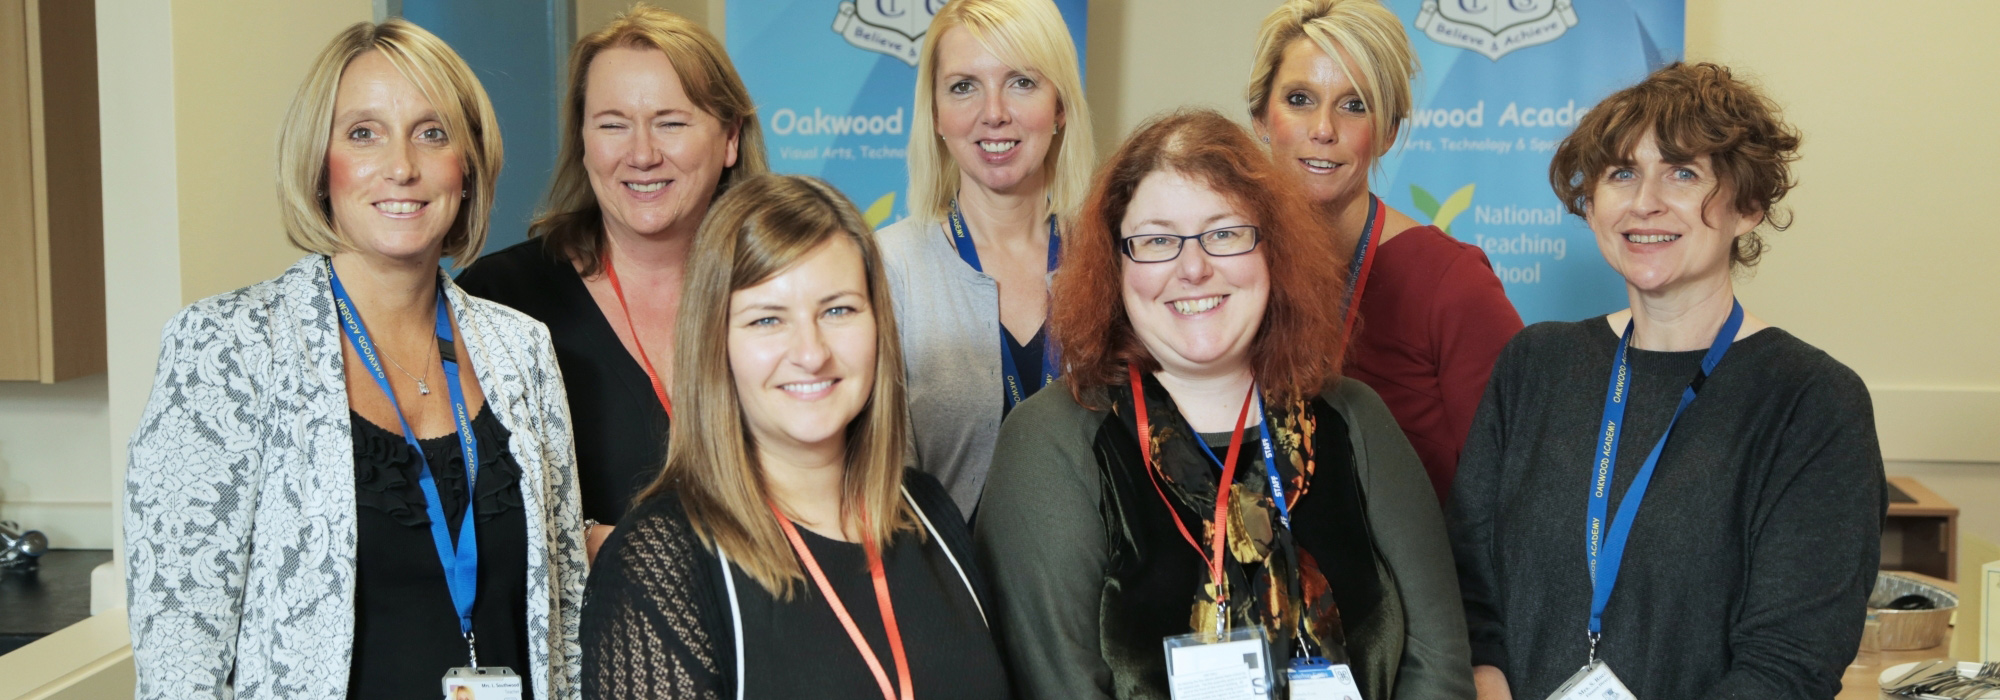 Staff at Oakwood Academy National Teaching School